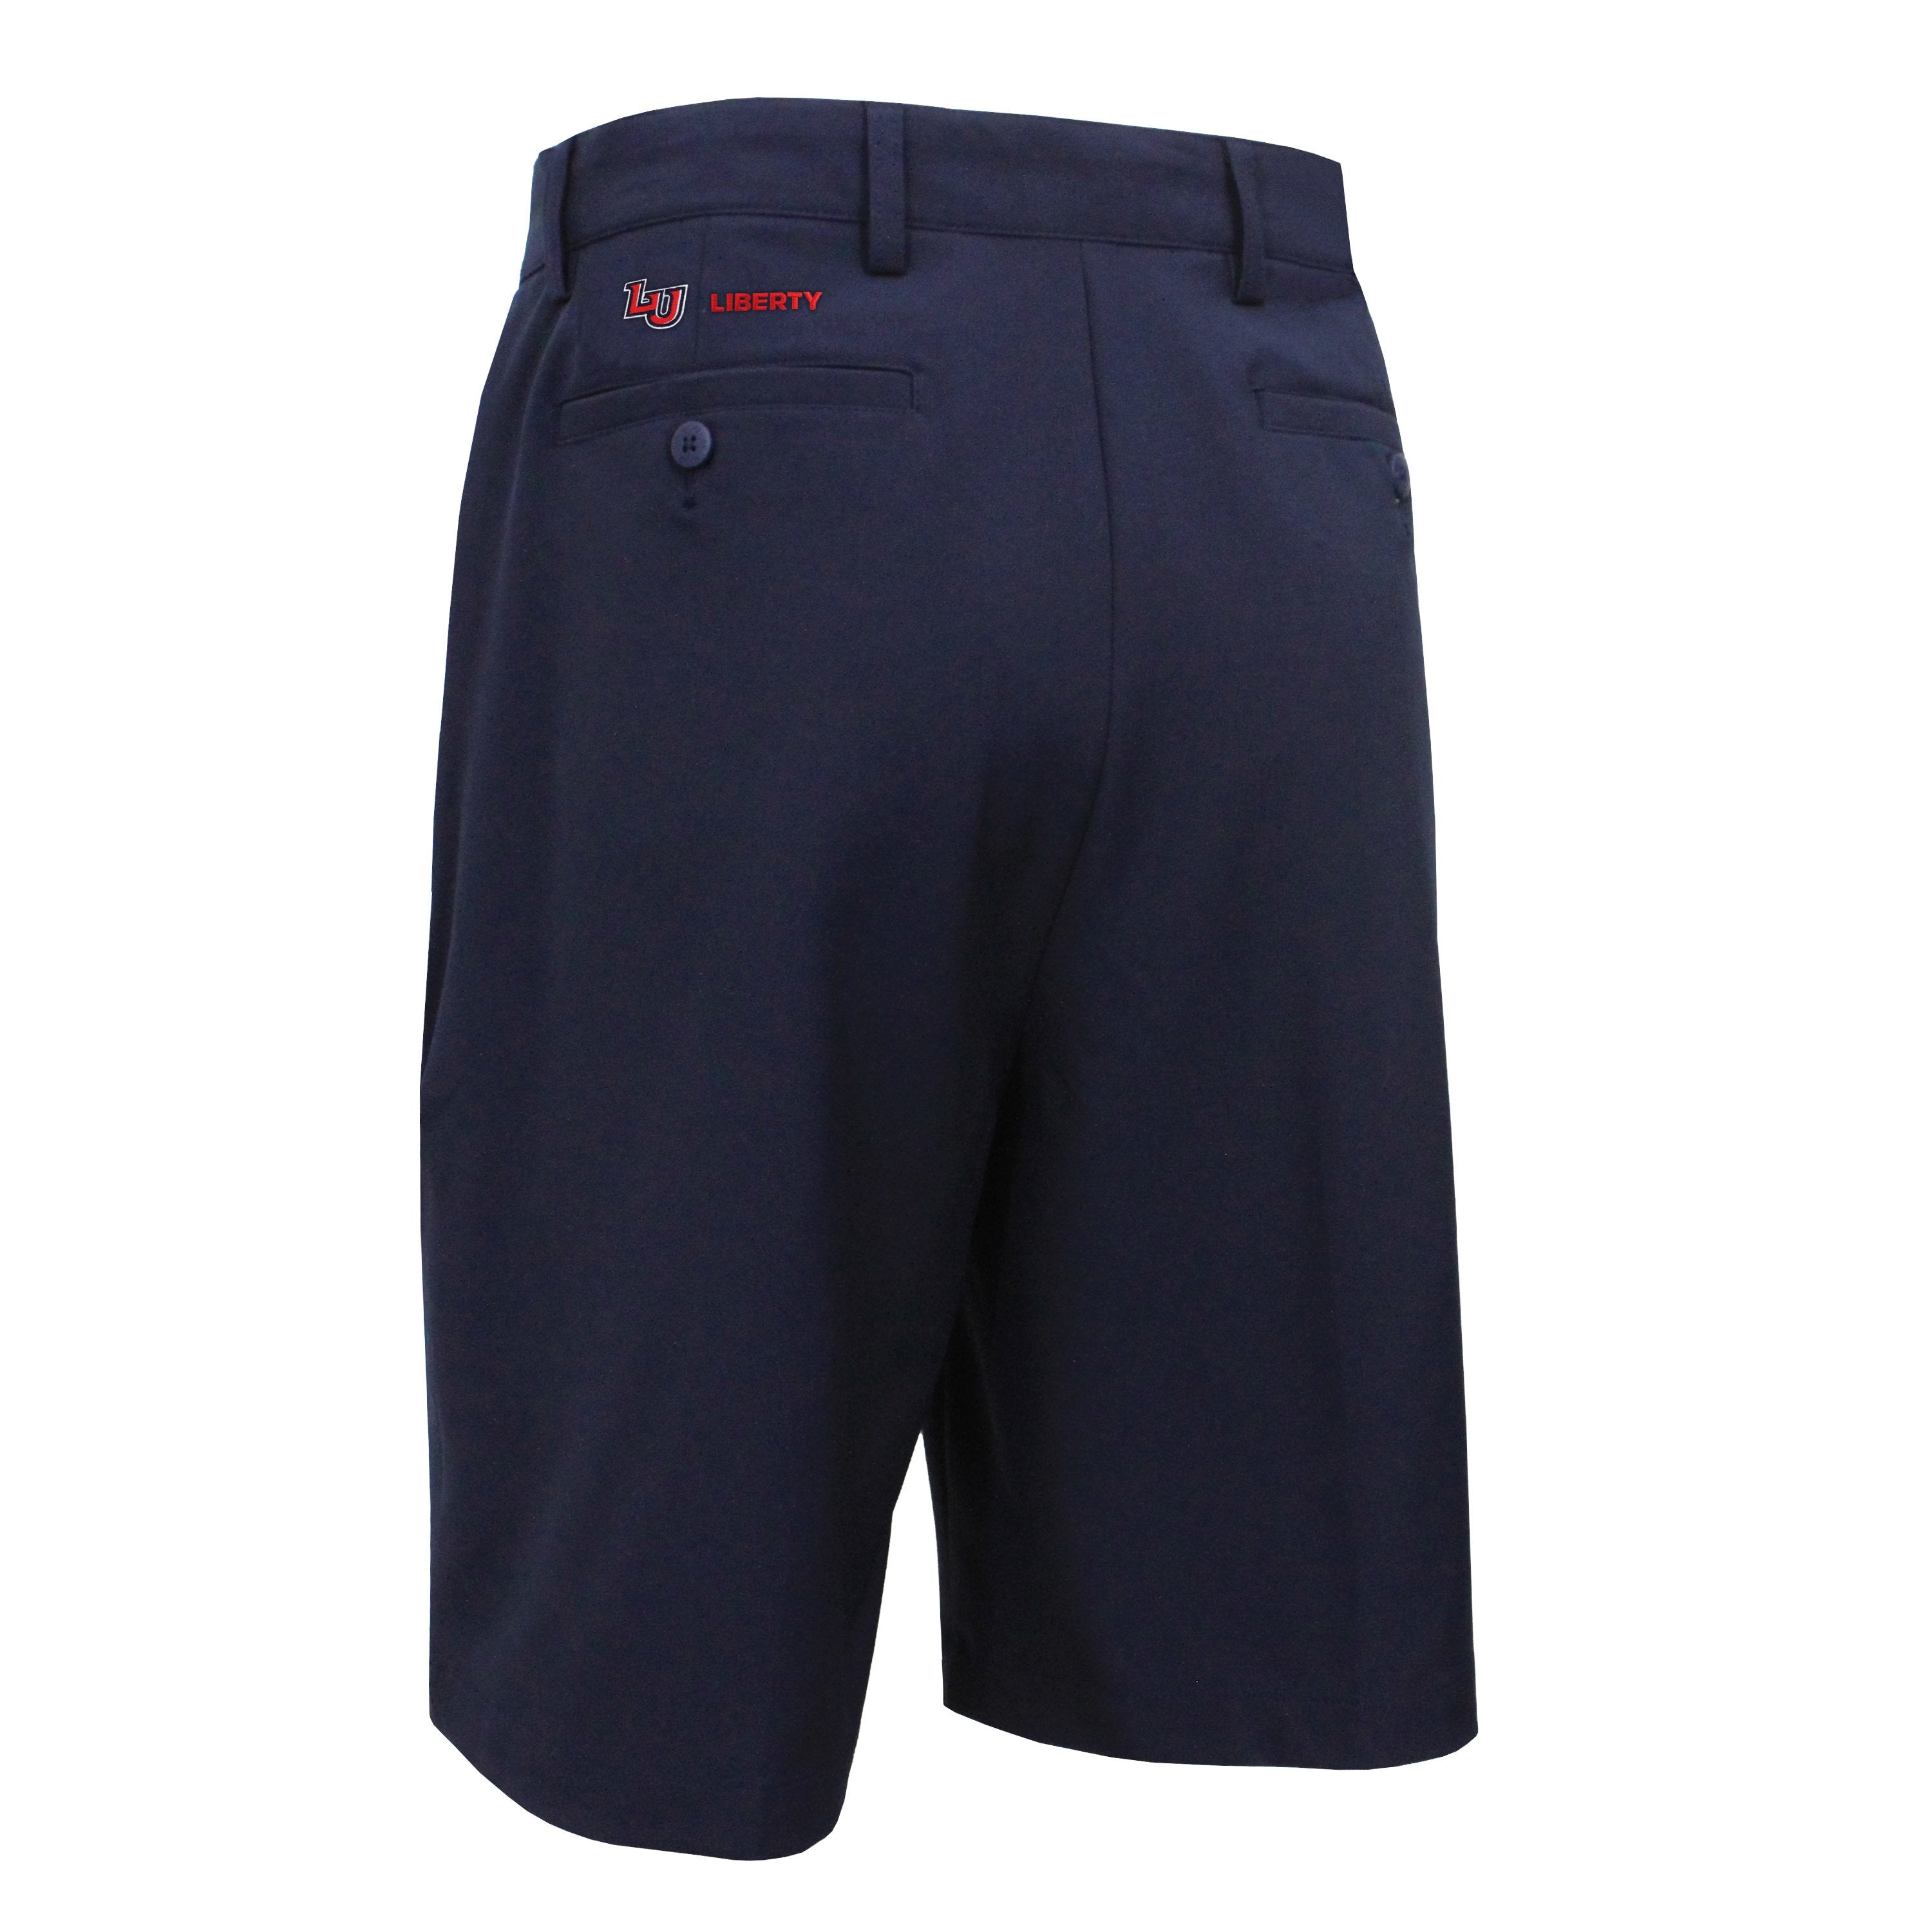 FootJoy Liberty Flat Front Shorts With Back Embroidered Logo